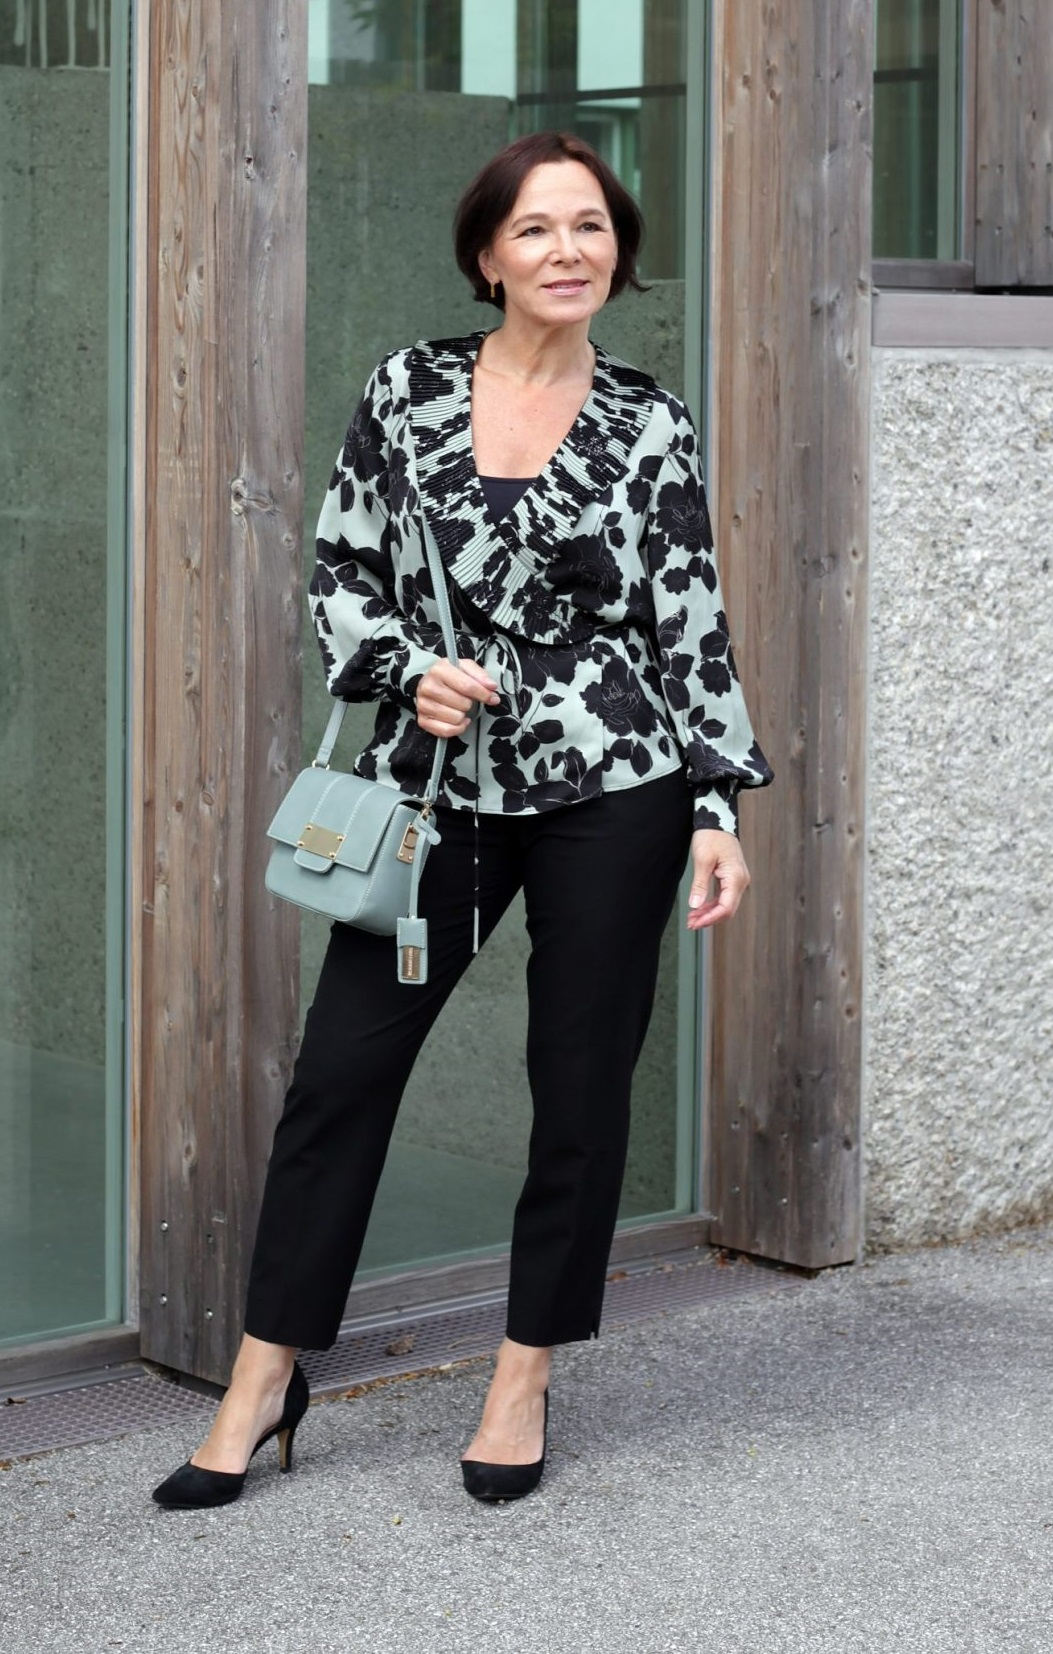 LadyofStyle Mango Floral Prints Blumenmuster Wickelbluse 50plus Blogger